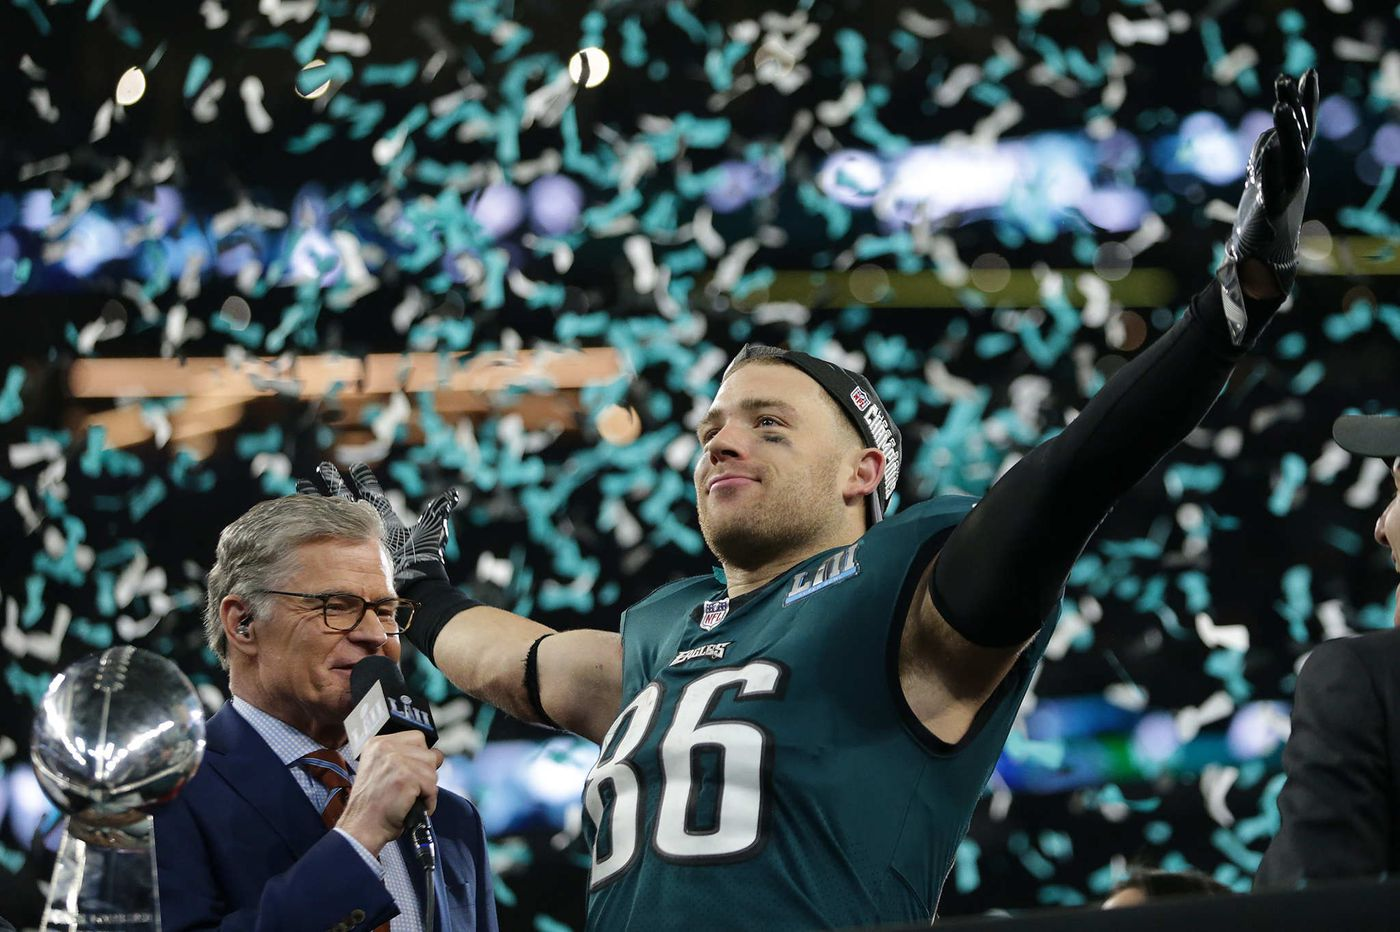 Eagles focus on the Vikings, not their Super Bowl LII victory, in return to Minnesota